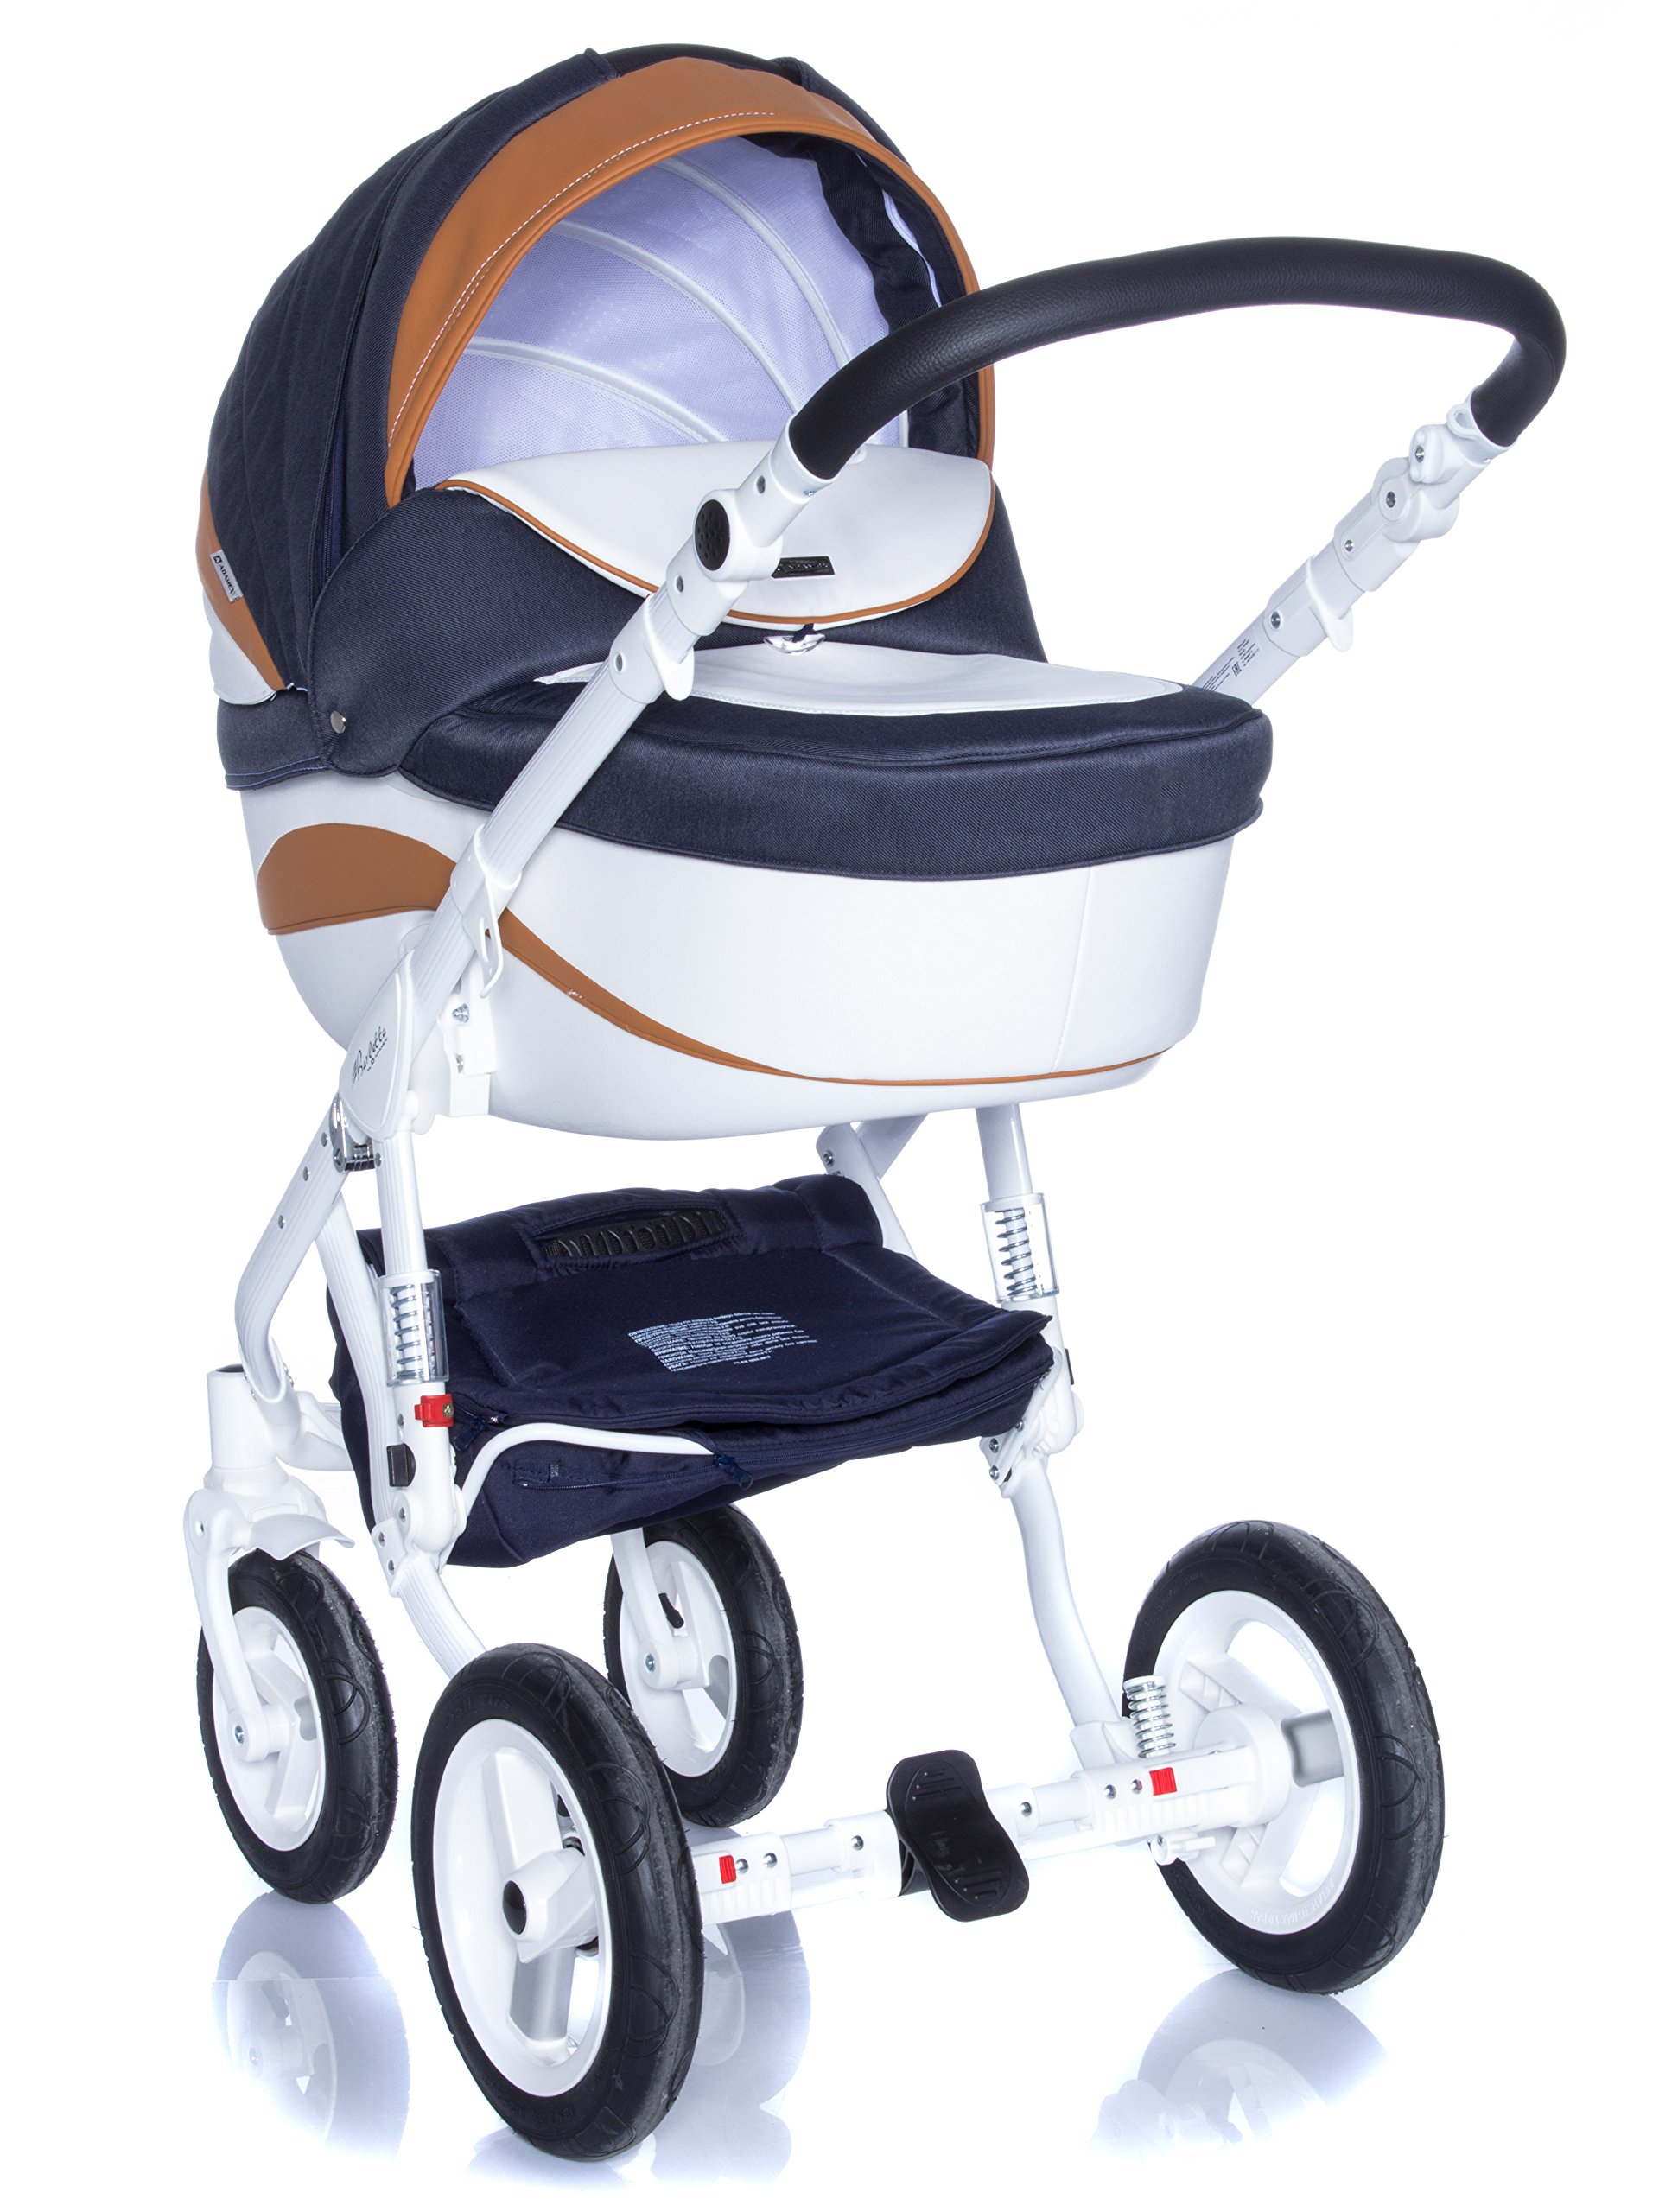 Baby Pram Pushchair Stroller Buggy, Travel System Adamex Barletta New B7 Fox-Navy-White 2in1 + ADAPTORS for CAR Seats: Maxi-COSI CYBEX KIDDY Be Safe Adamex Lockable swivel wheels and lockable side suspension system Light alluminium chassis with polyurethane wheels 2 separate modules + car seats adapters - big and deep baby tub functional sport seat and car seats adapters that can be attached to the following car seats: Maxi-Cosi: City, Cabrio fix, Pebble Cybex: Aton Kiddy: Evoluna i-Size, Evolution Pro 2 Be Safe: iZi Go 2